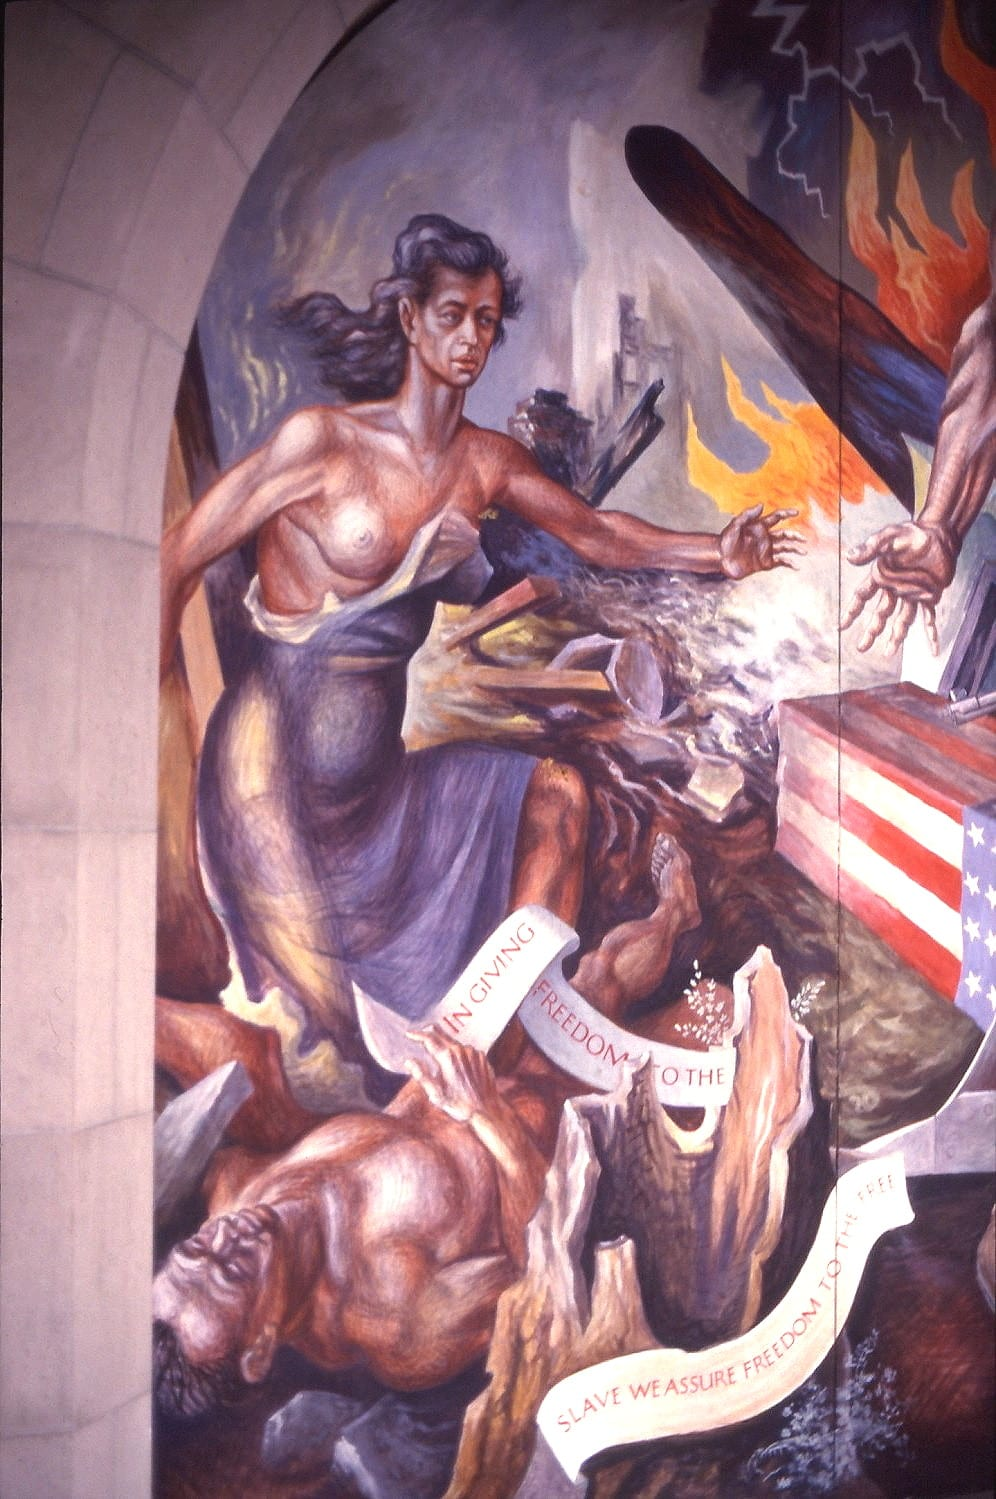 New Deal mural by Charles Pollock, E Lansing USA, ca. 1943. Photo: ca. 1988 by My Einar E Kvaran picture. Public Domain.